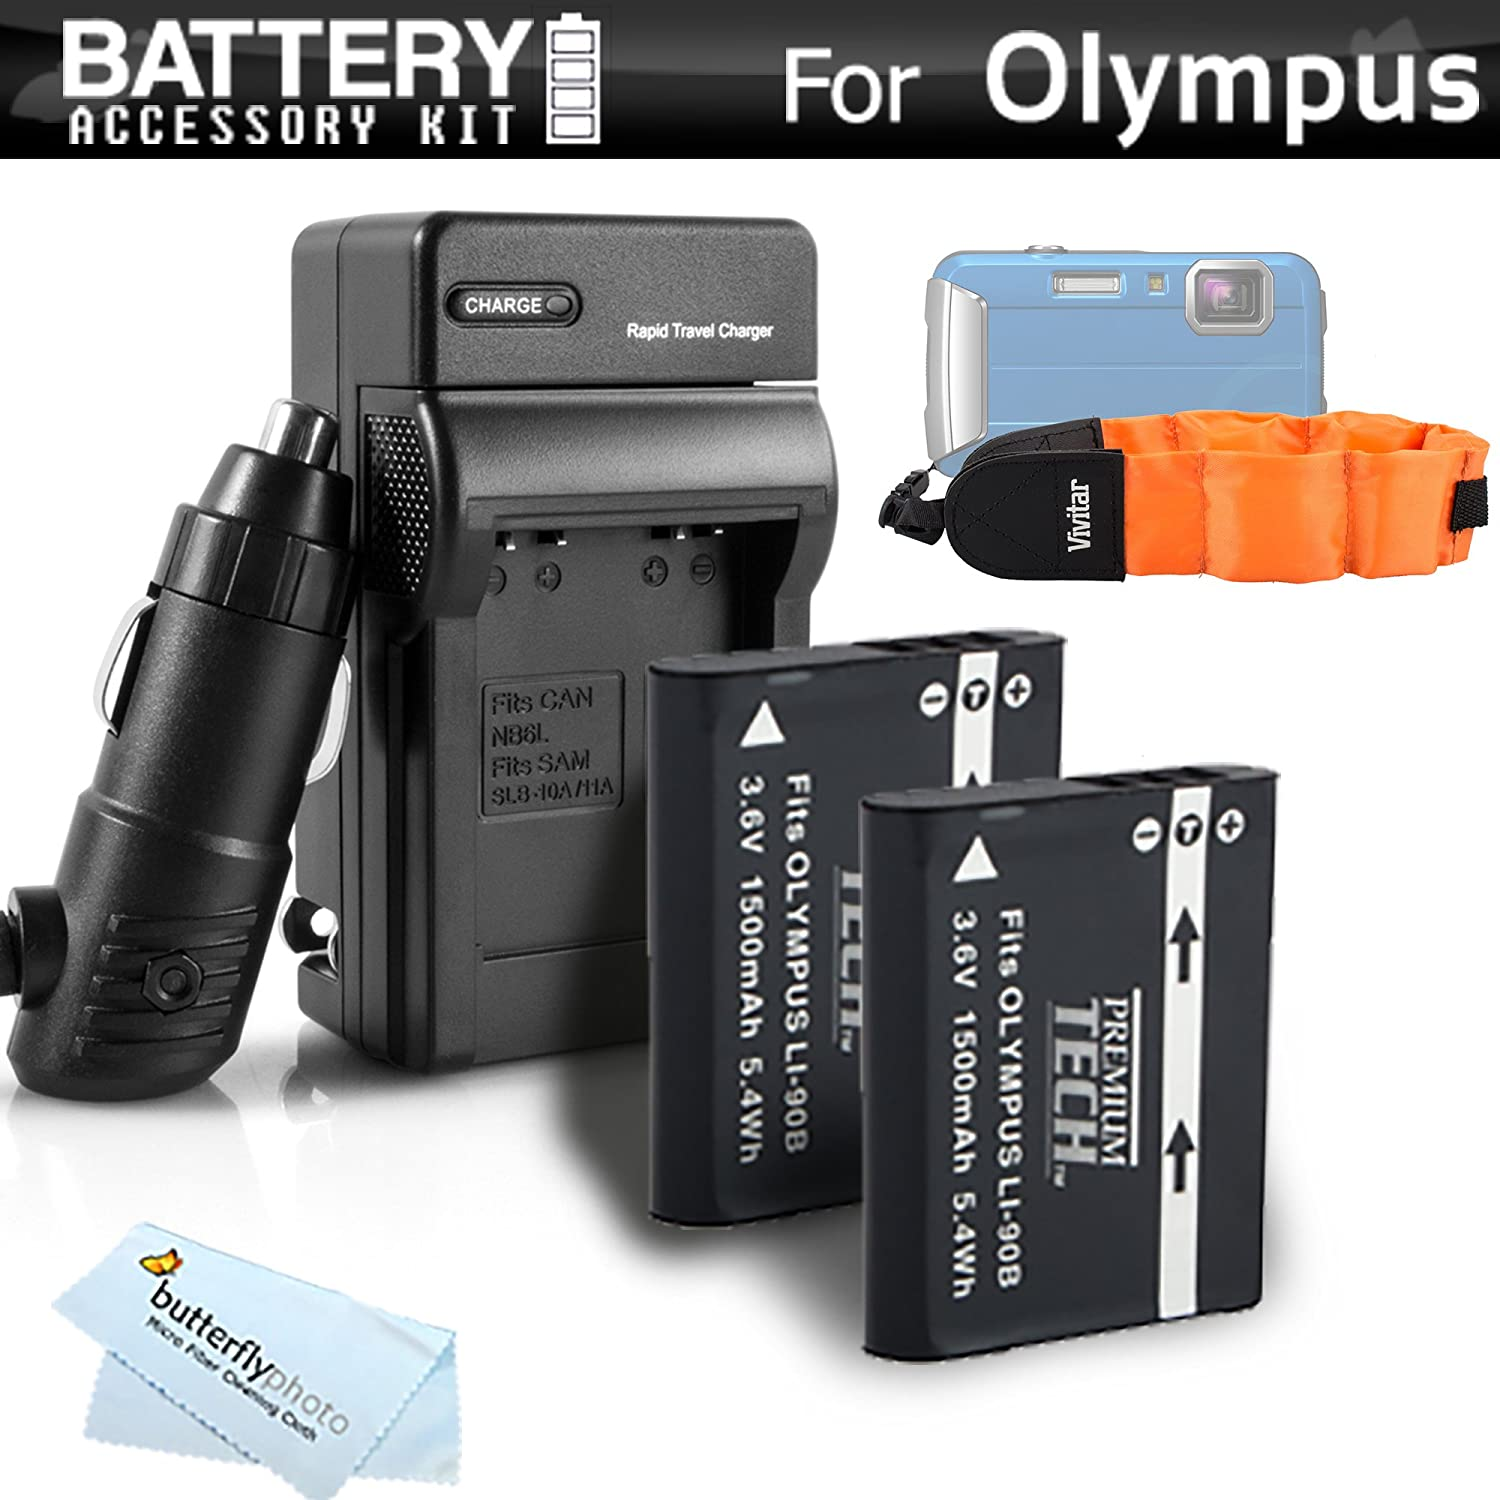 2 Pack Battery and Charger Kit Bundle for Olympus Tough TG-Tracker, TG-5, TG-2iHS, TG-3, TG-4 Waterproof Digital Camera Includes 2 Replacement ...